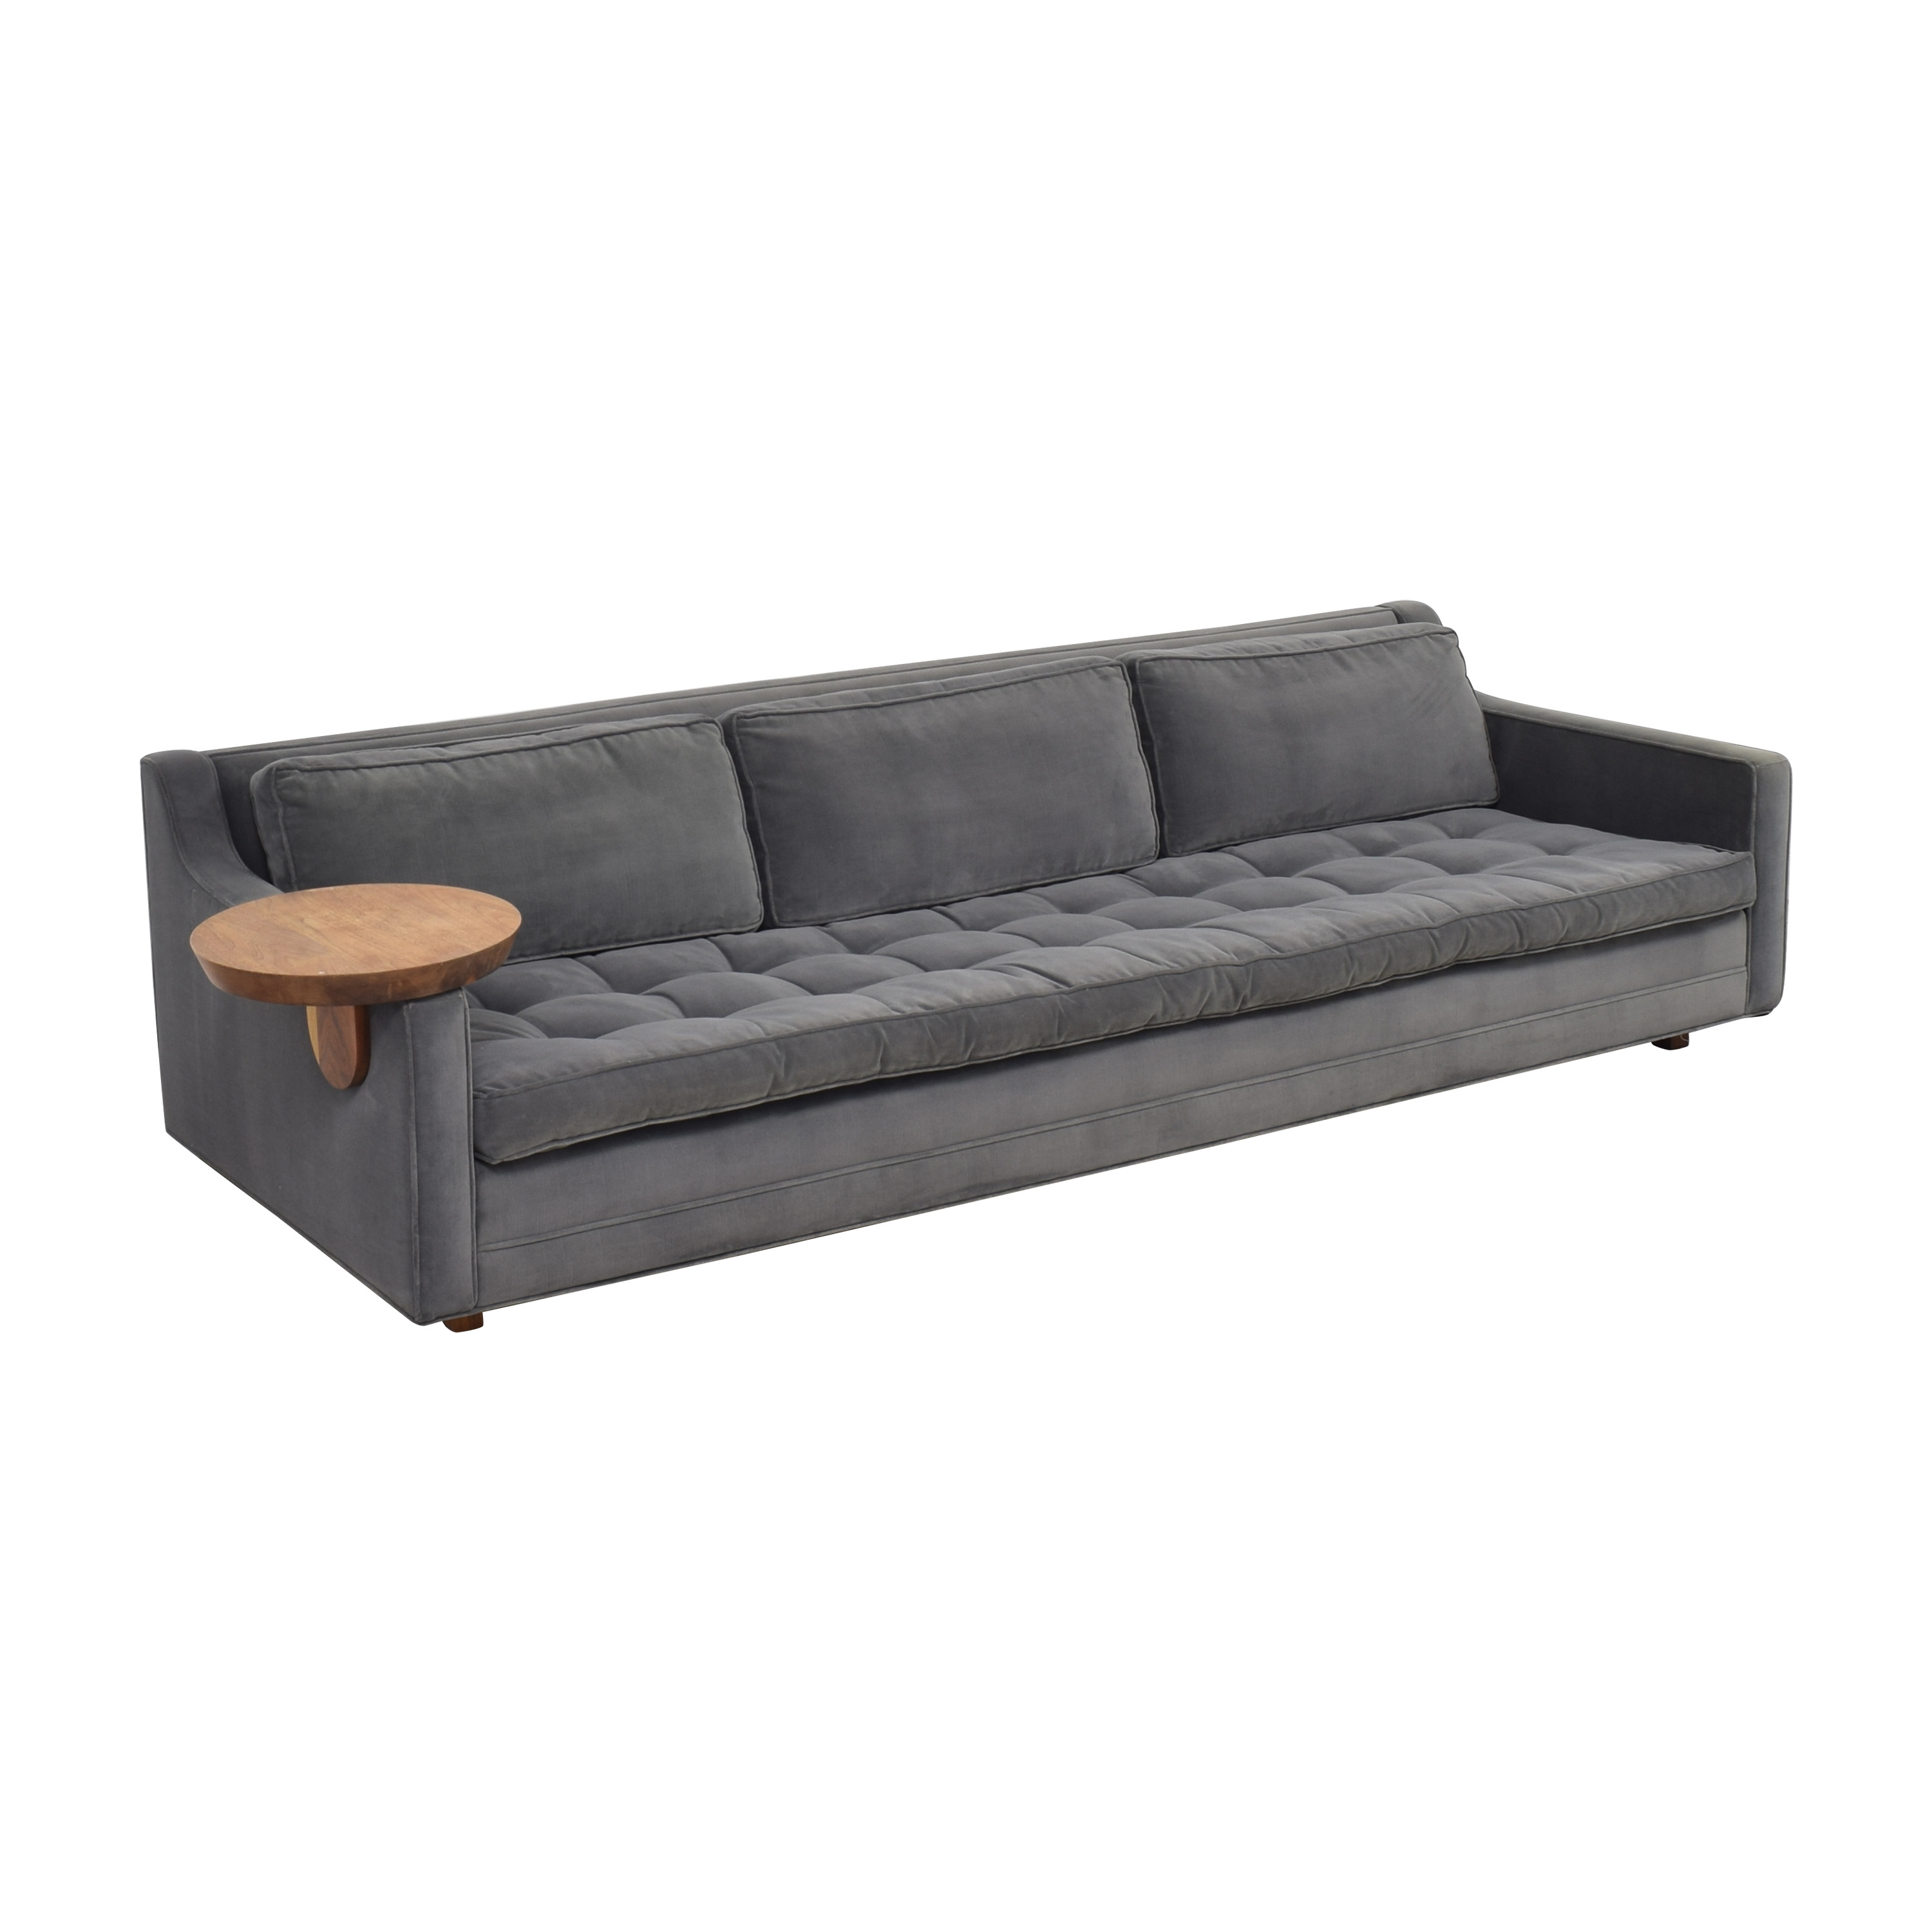 shop Artless Up Three Seater Sofa with Art Tray Artless